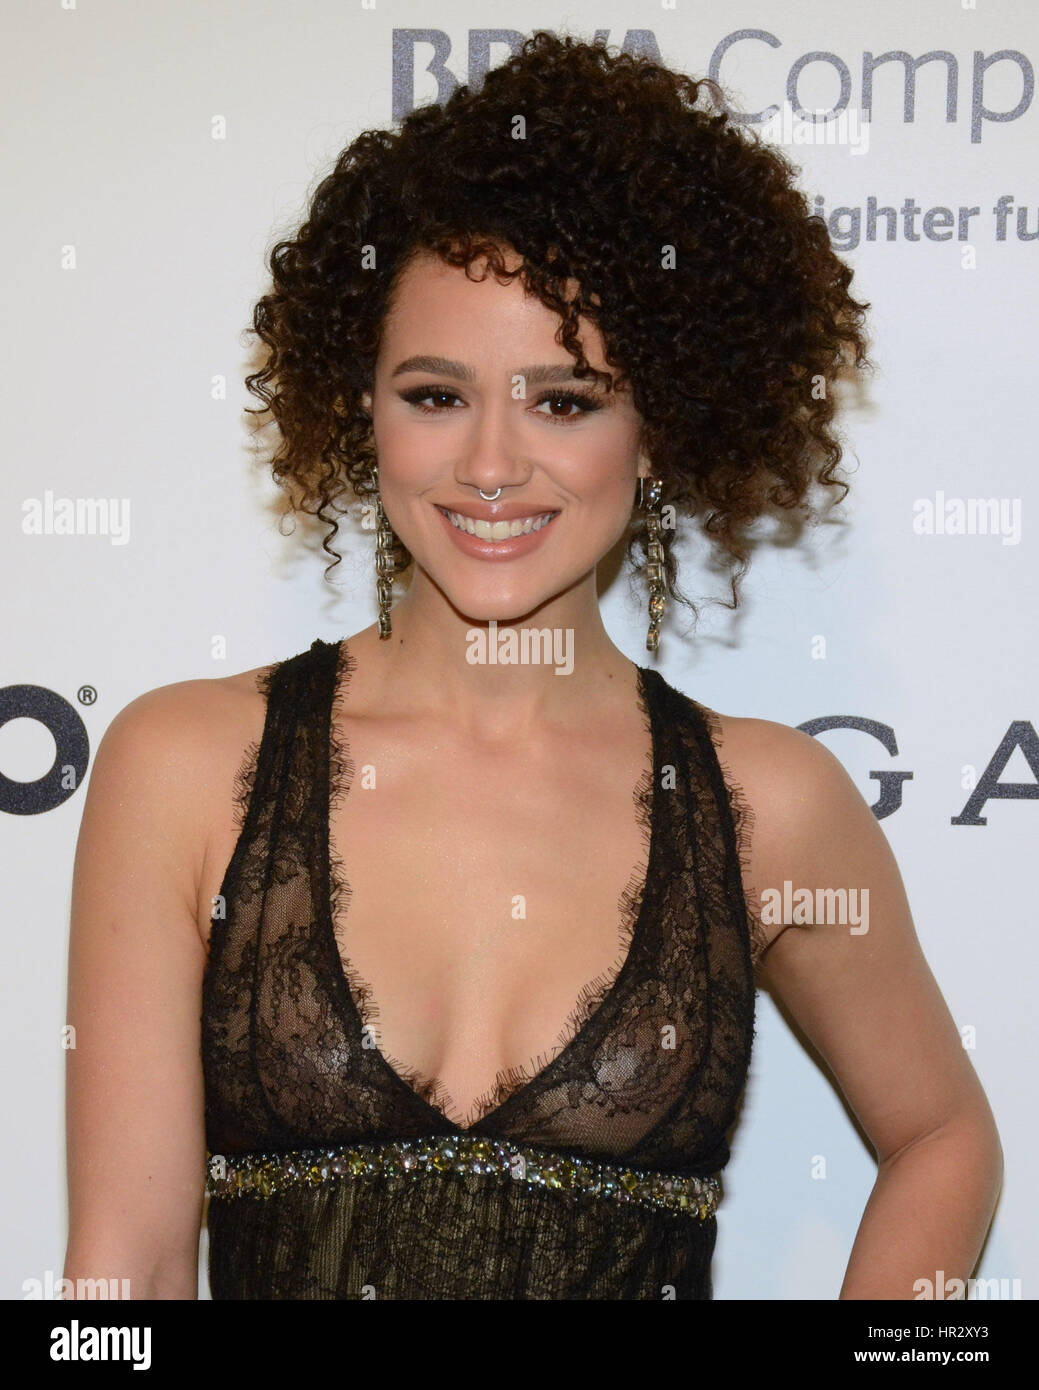 nathalie emmanuel arriving at the elton john oscar party in beverly